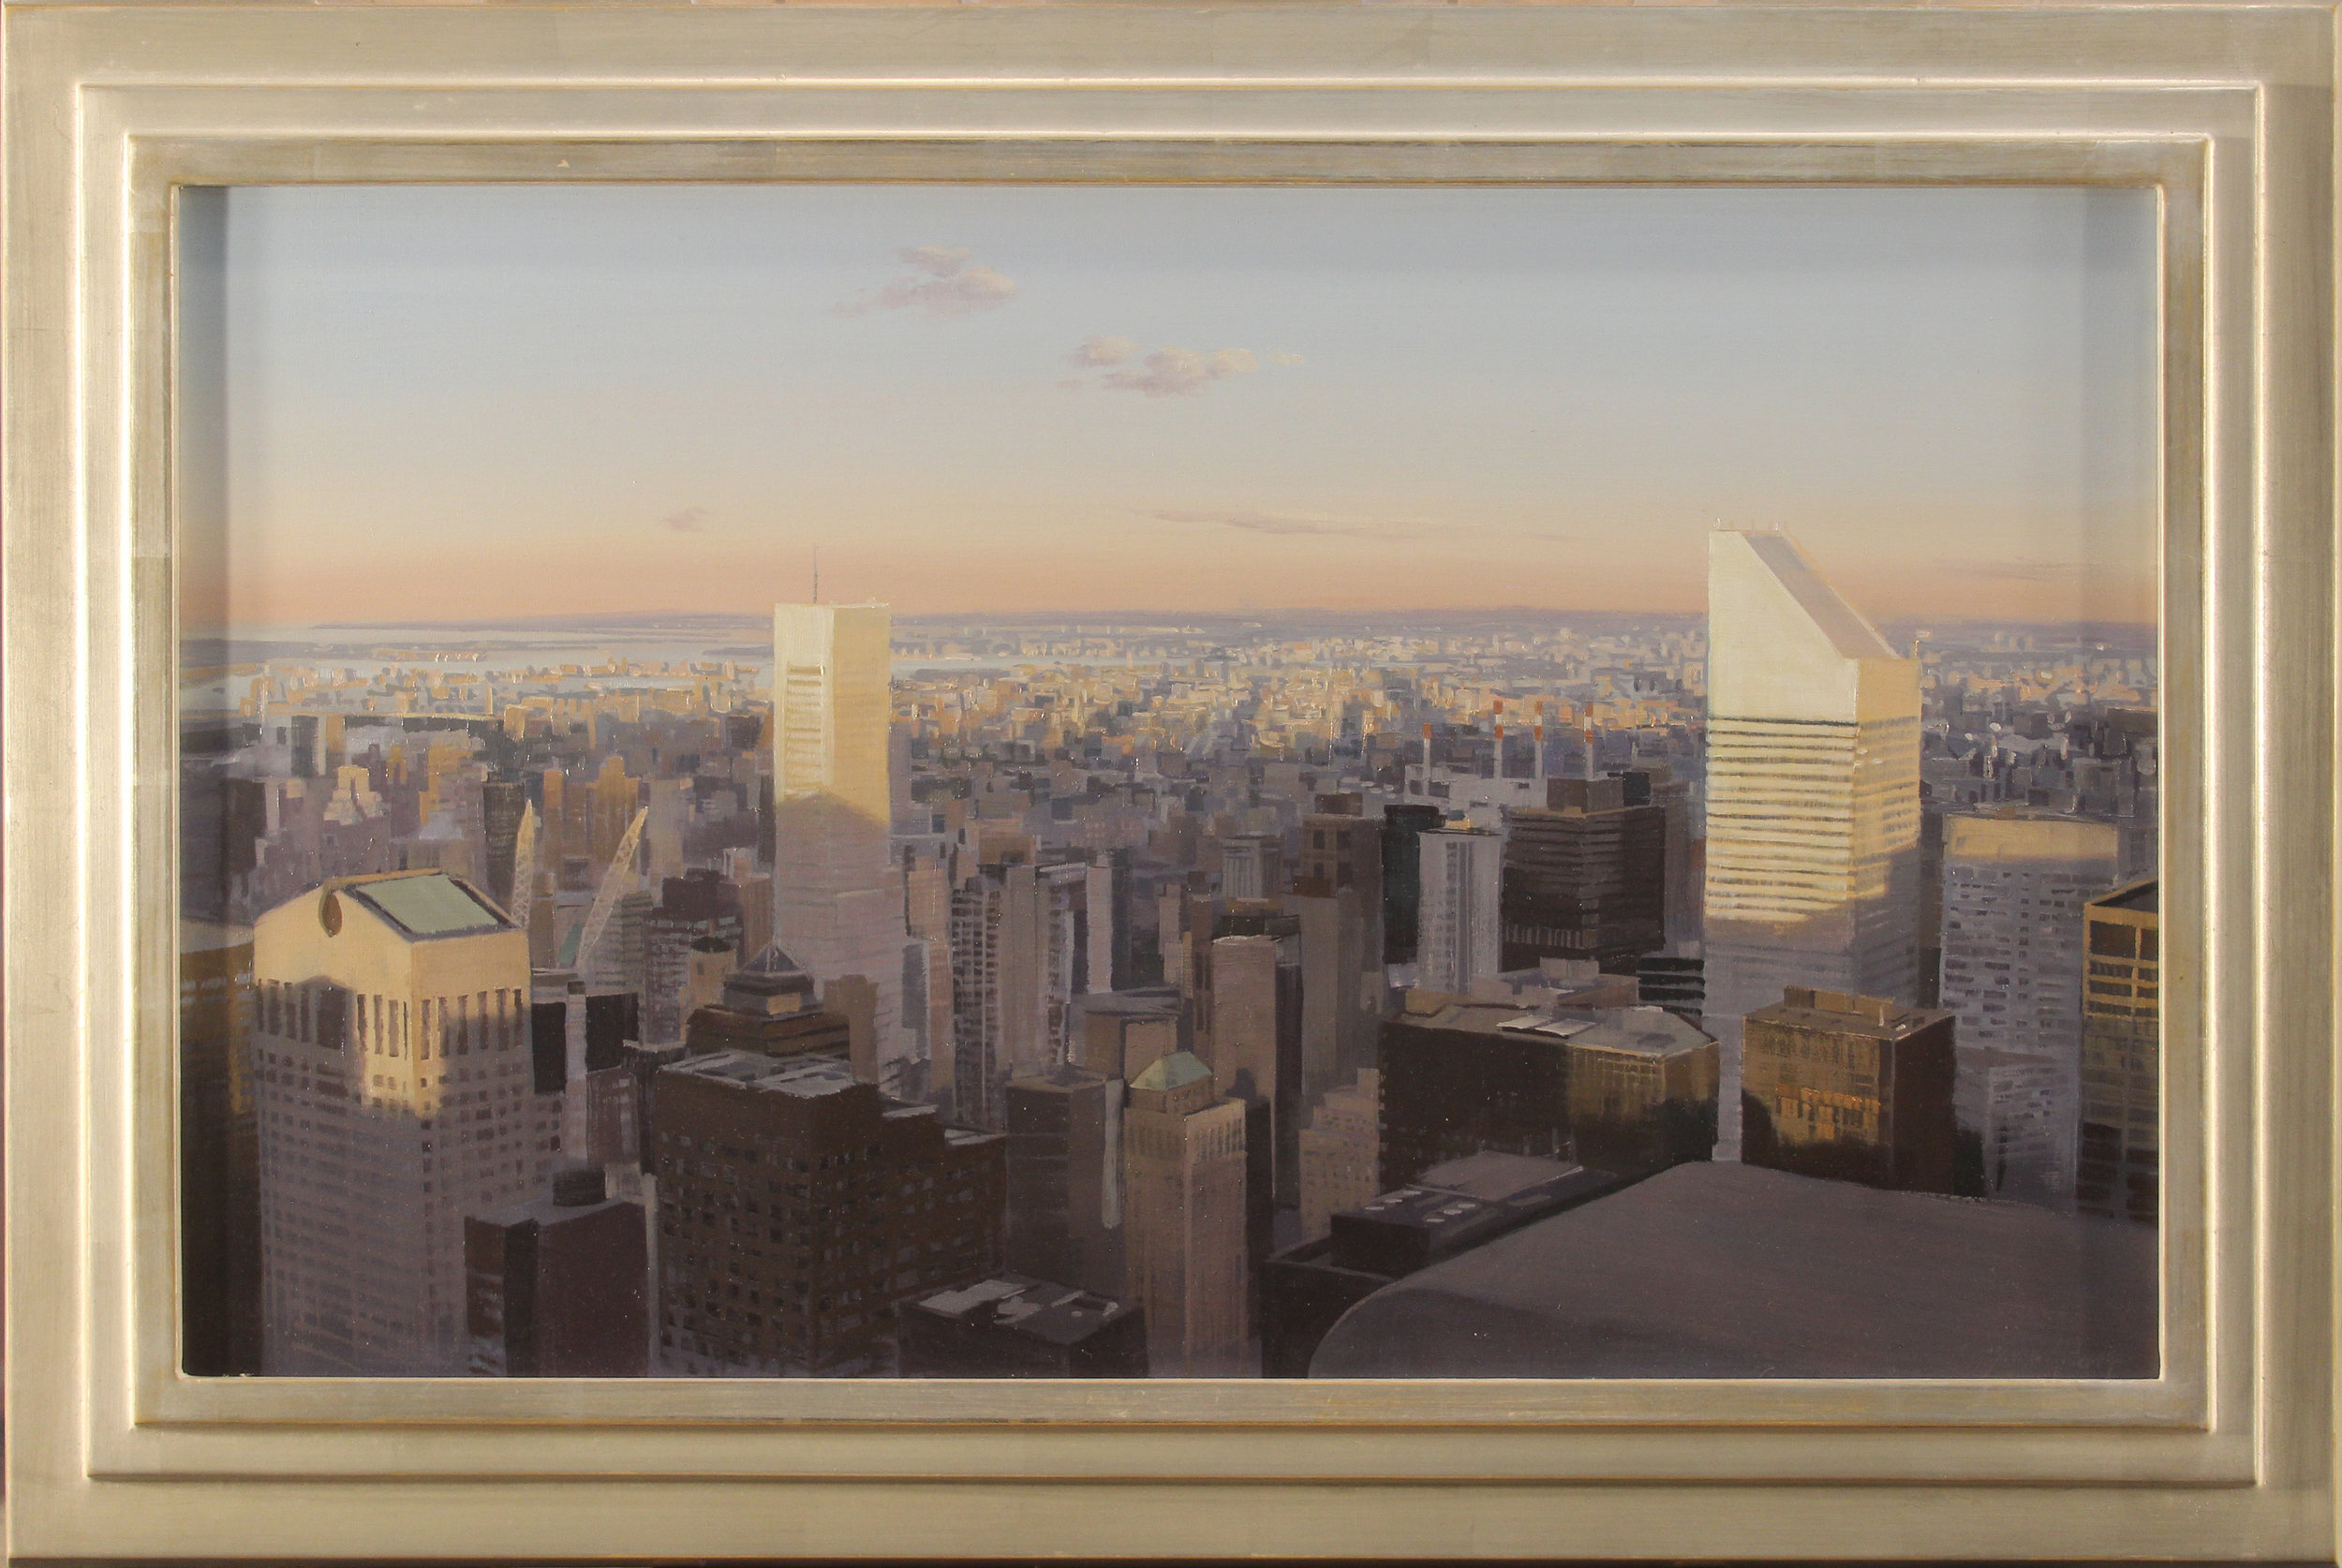 Brad Aldridge, Midtown at Dusk, 17 x 28 oil on panel, 22.25 x 33.5 frame, 2018, $5,000 (1).jpg